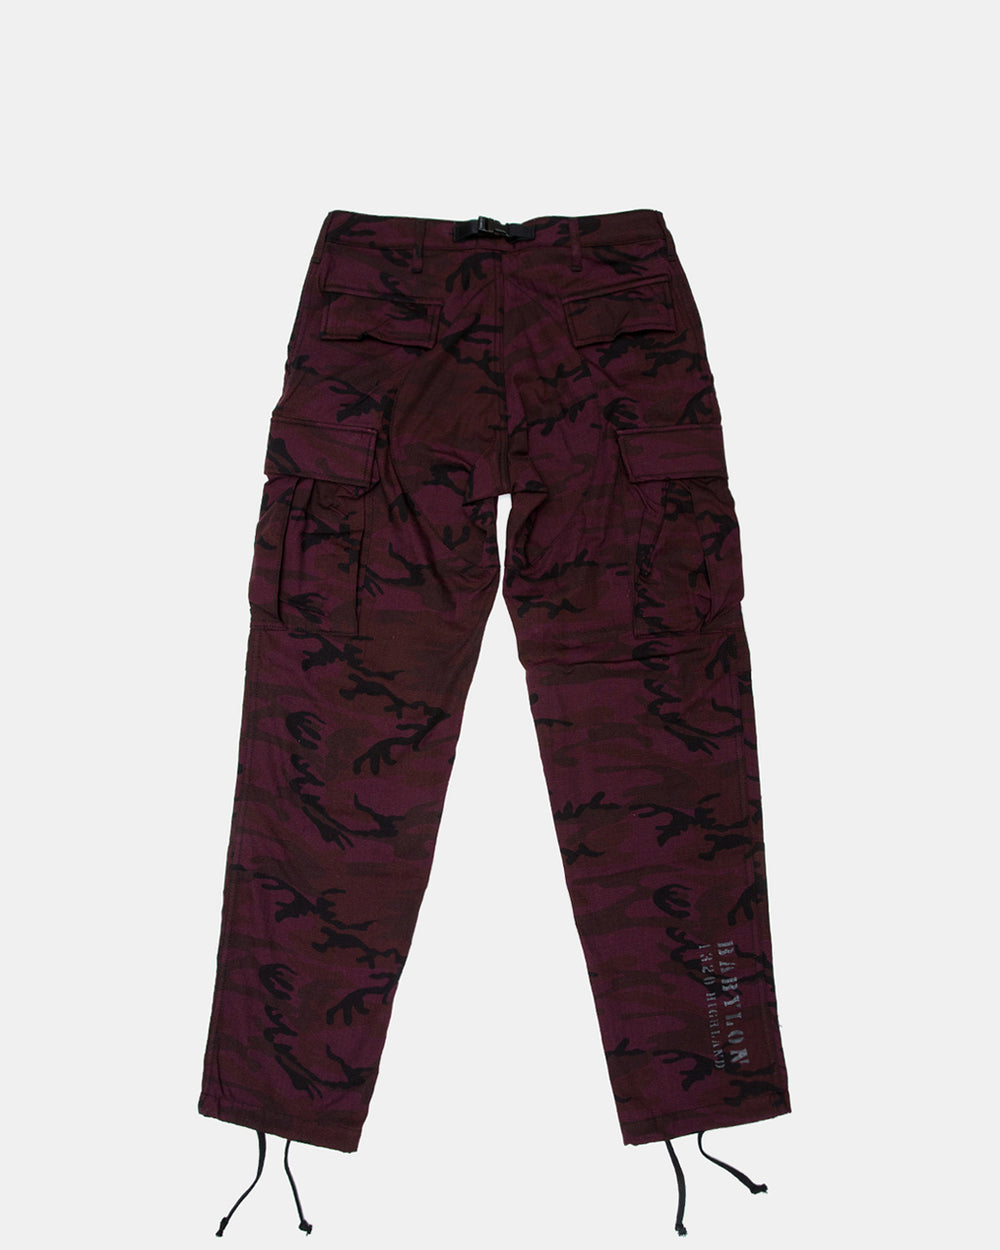 Babylon LA - Cargo Pants (Burgundy)